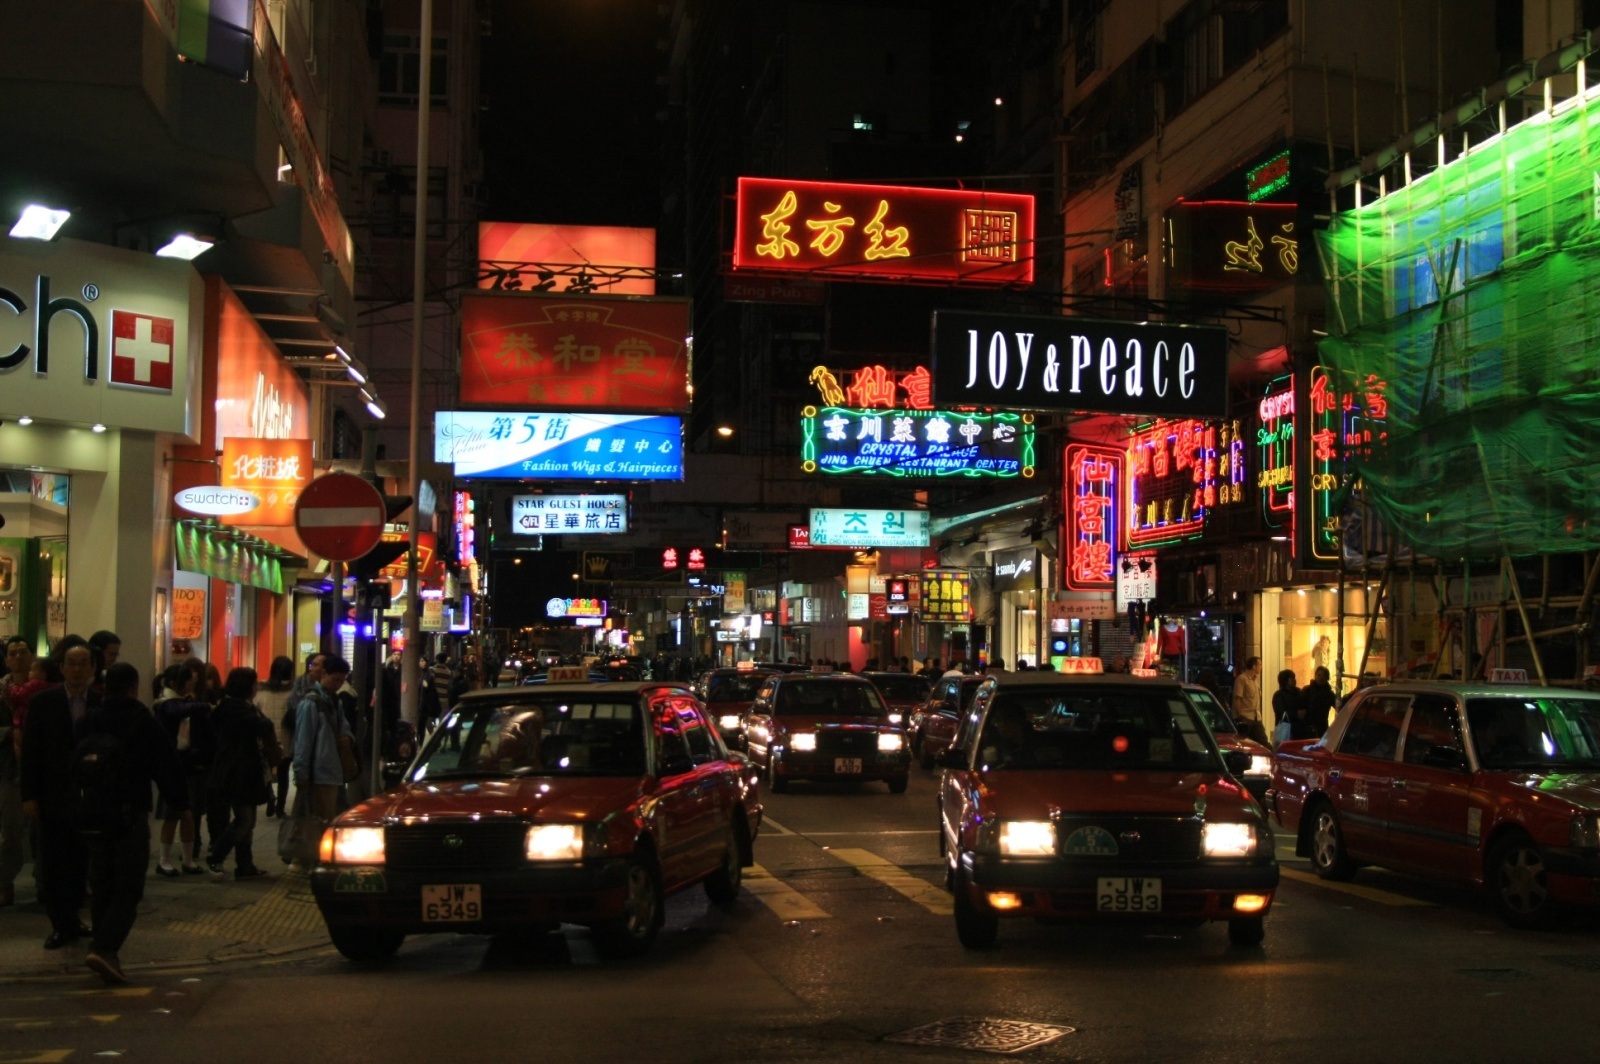 Crowdy local streets